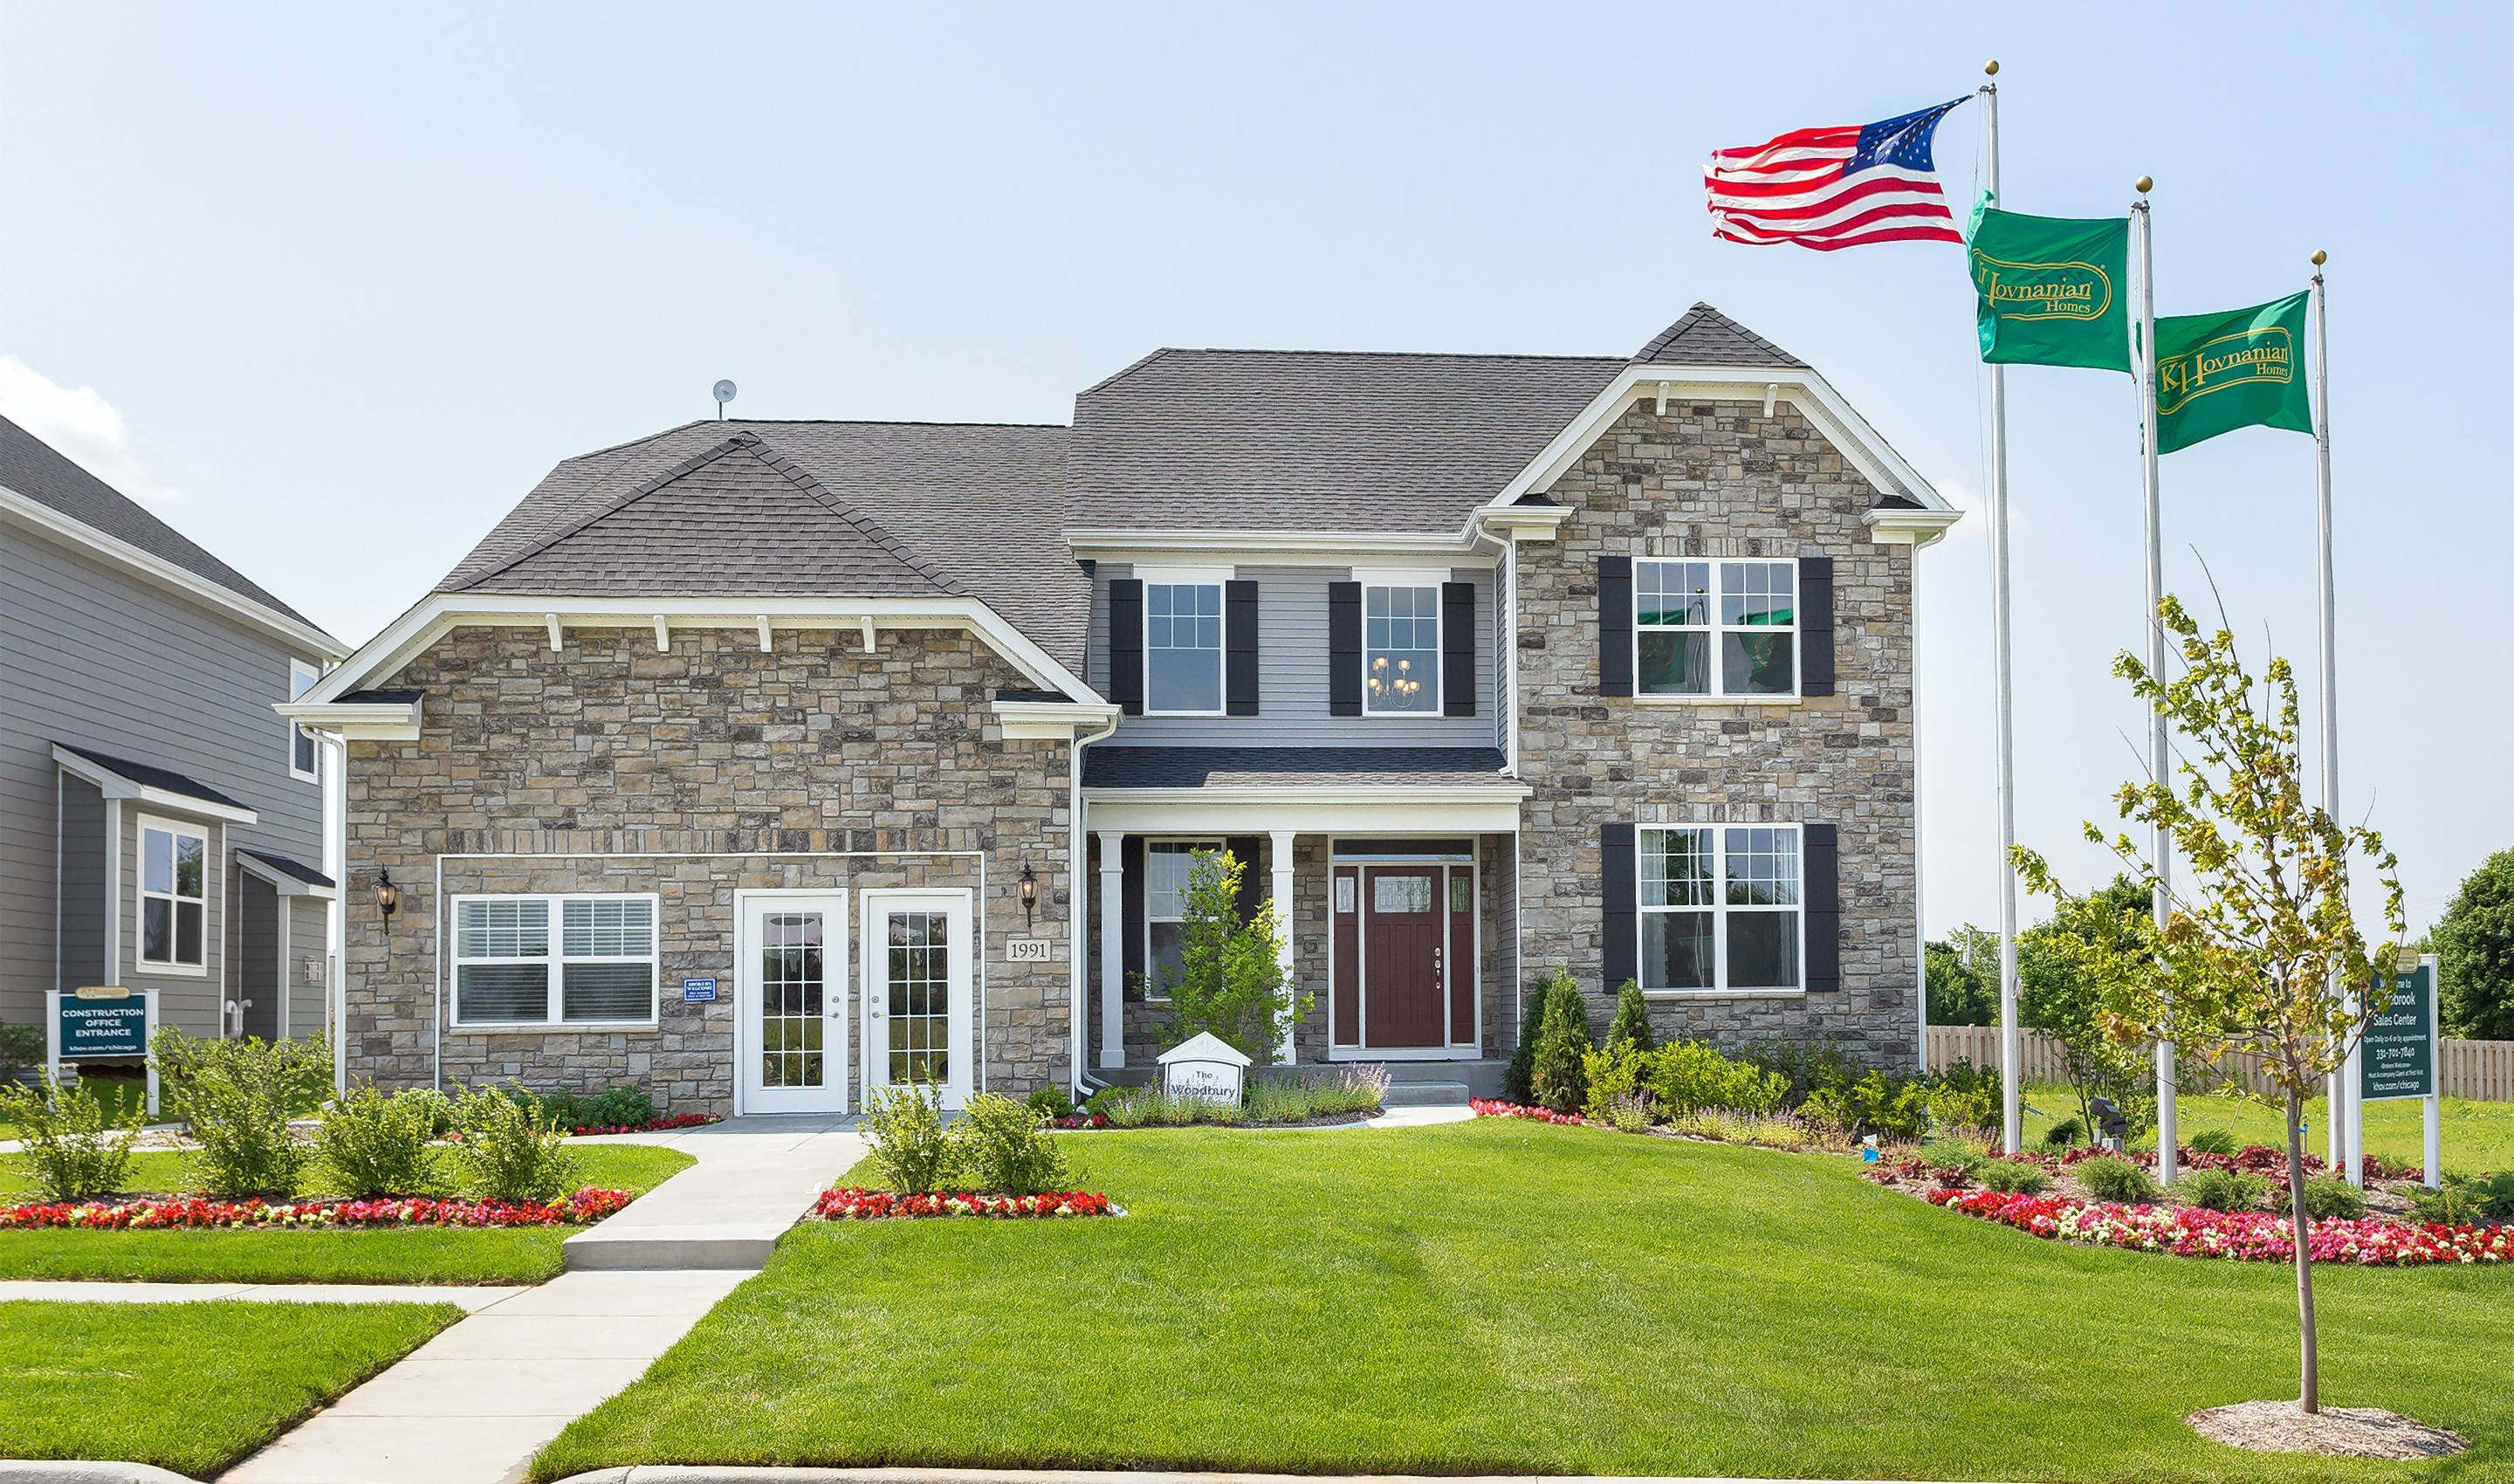 The Woodbury model at Sagebrook in South Elgin showcases the classic architecture representative of the community's single-family homes.